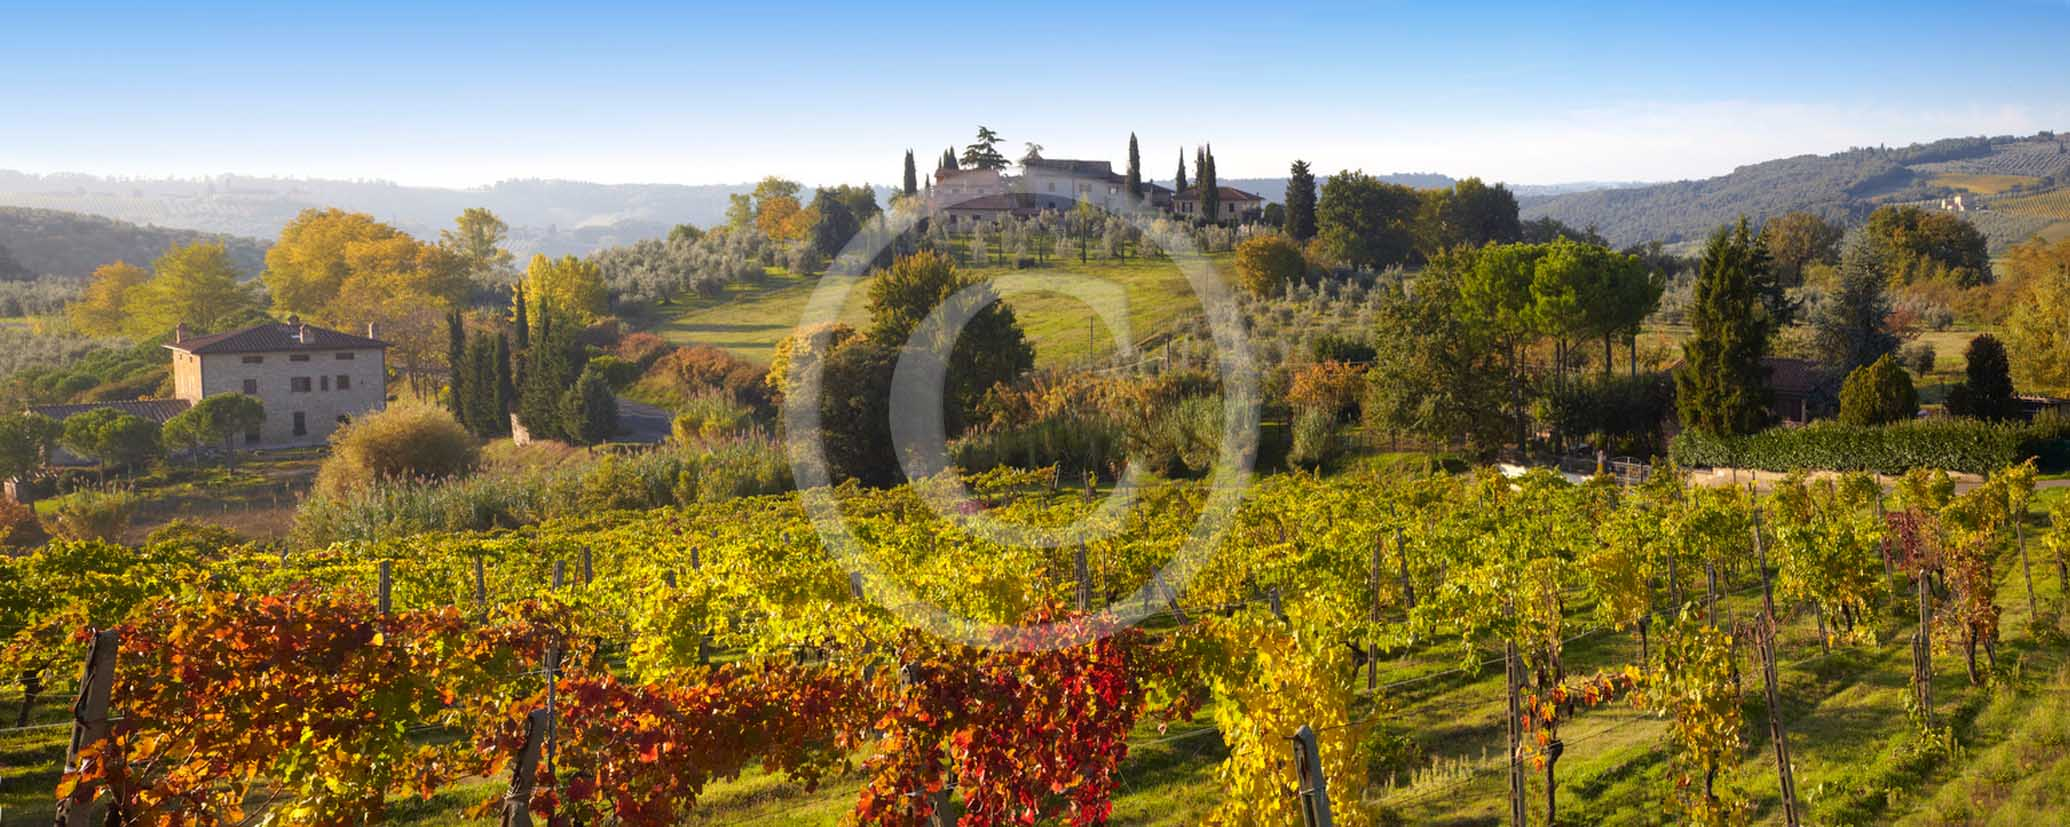 2011 - Panoramic view on sunrise with fog of vineyards and farm near San Gimignano village in Chianti Classico land.